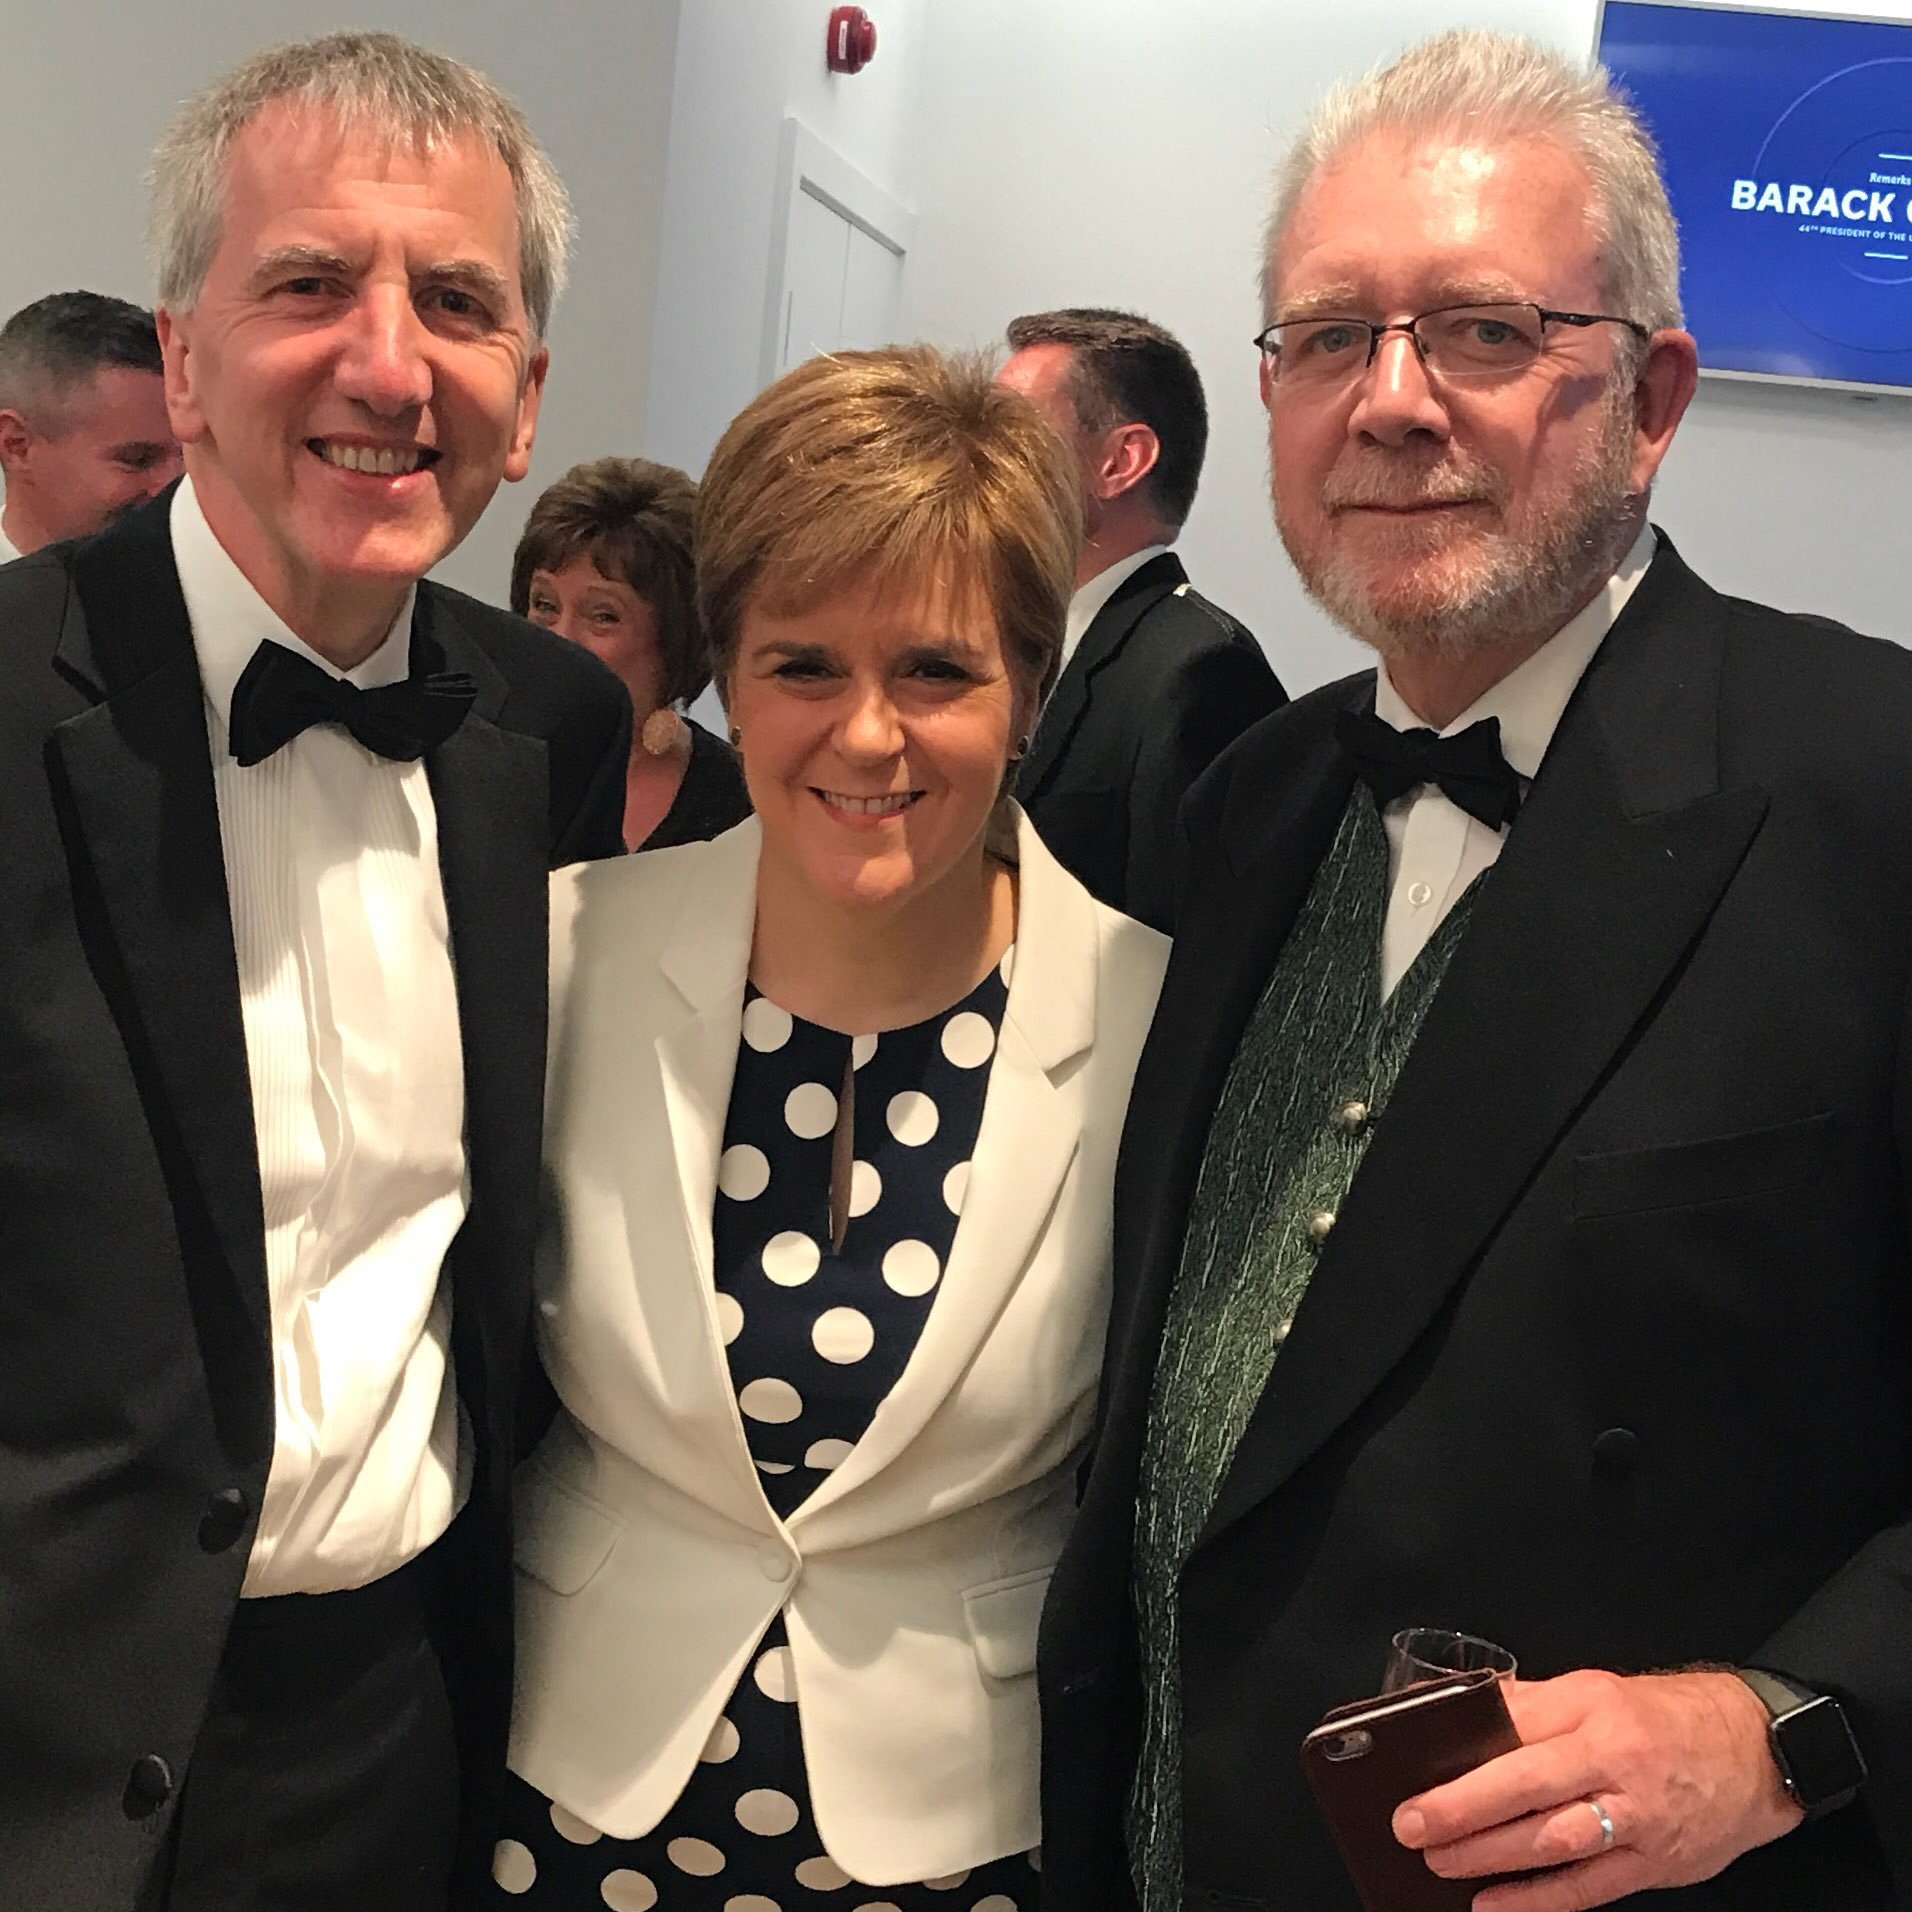 With First Minister of Scotland Nicola Sturgeon and Mike Russell MSP